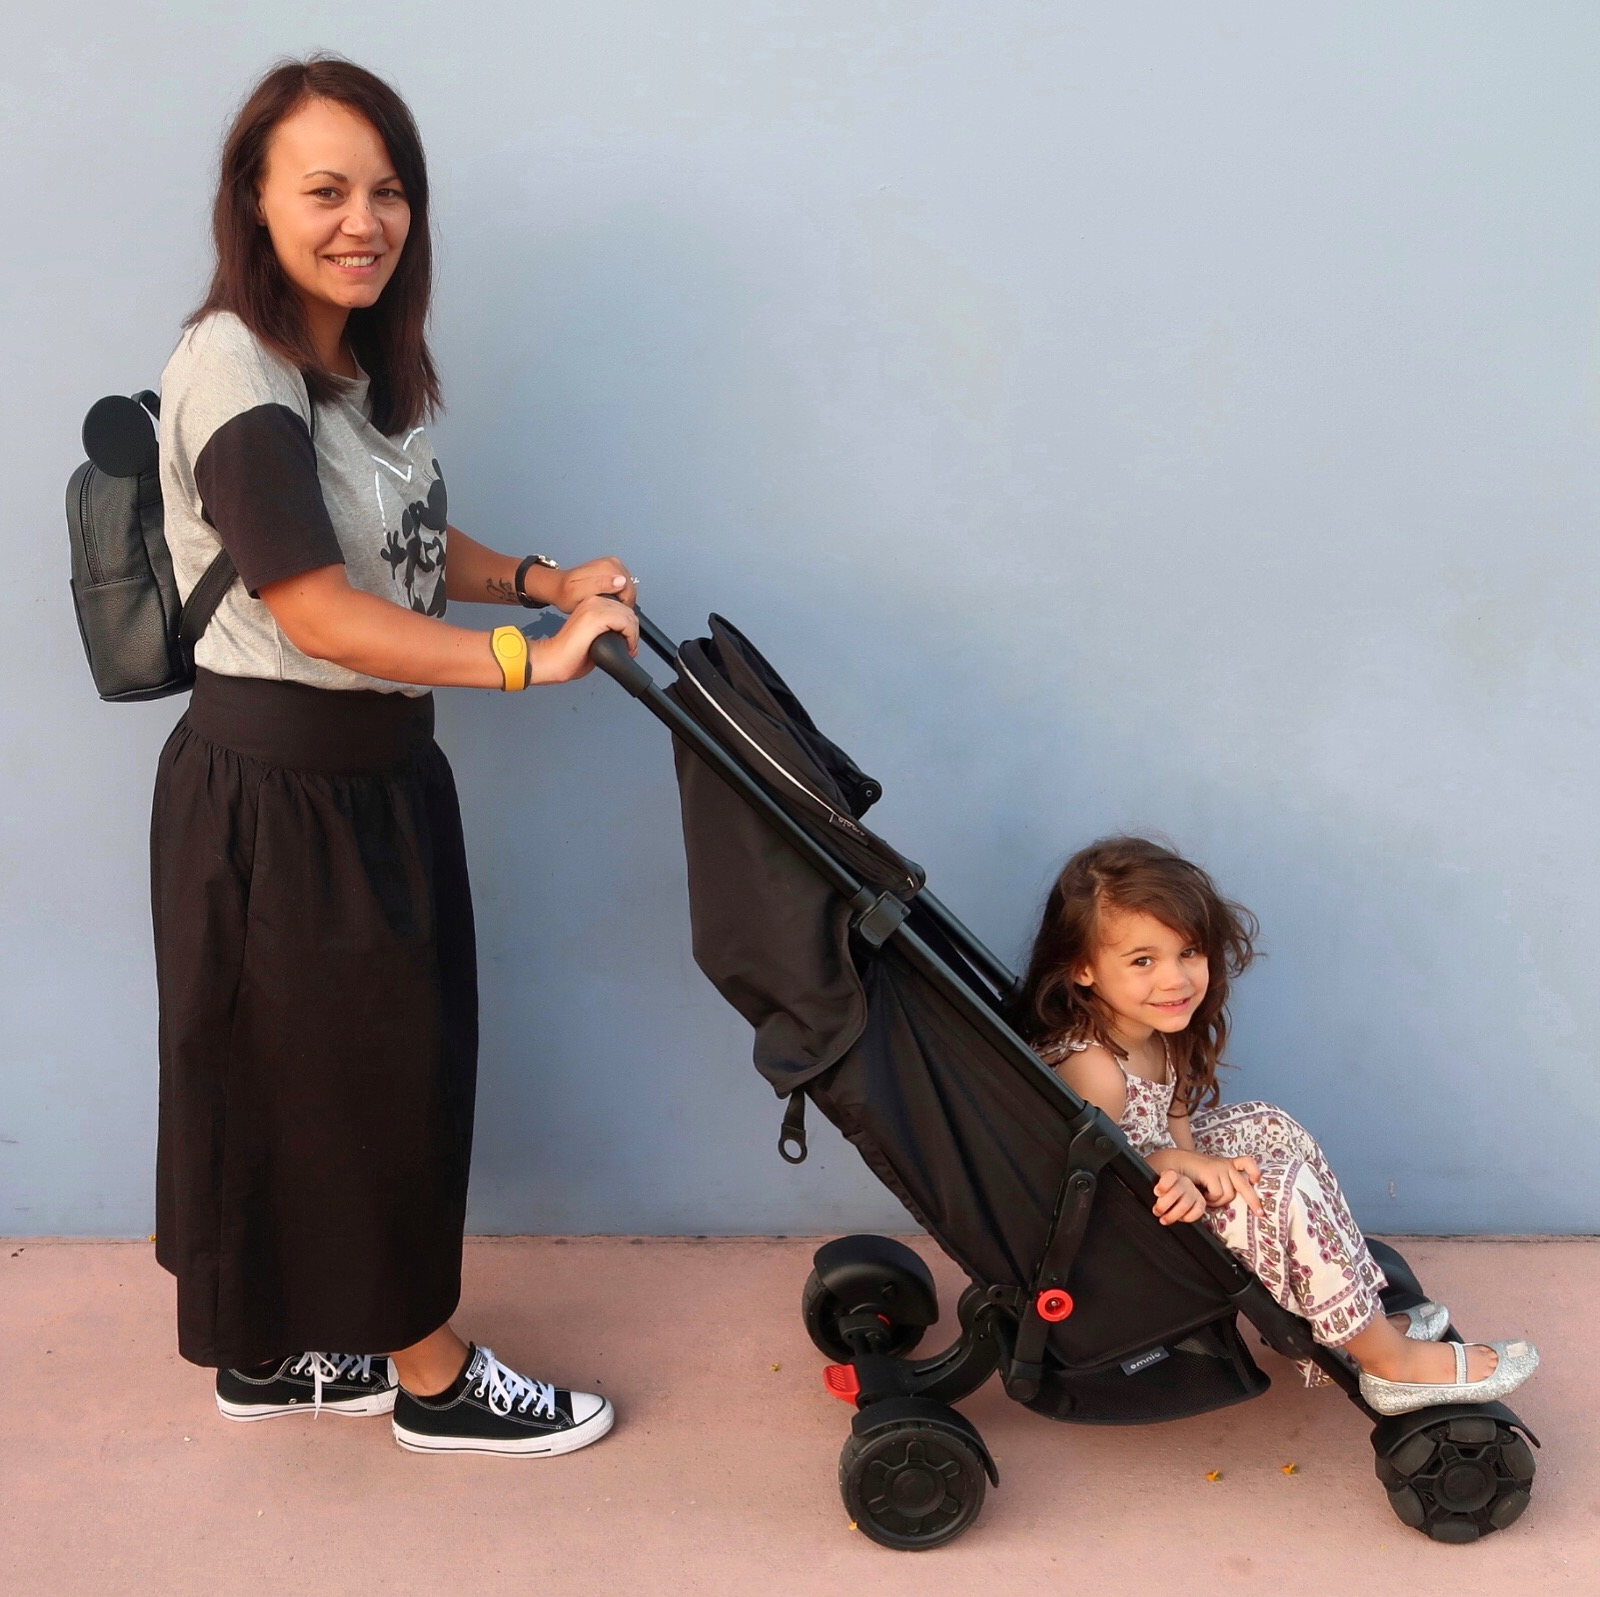 Travelling with the Omnio stroller